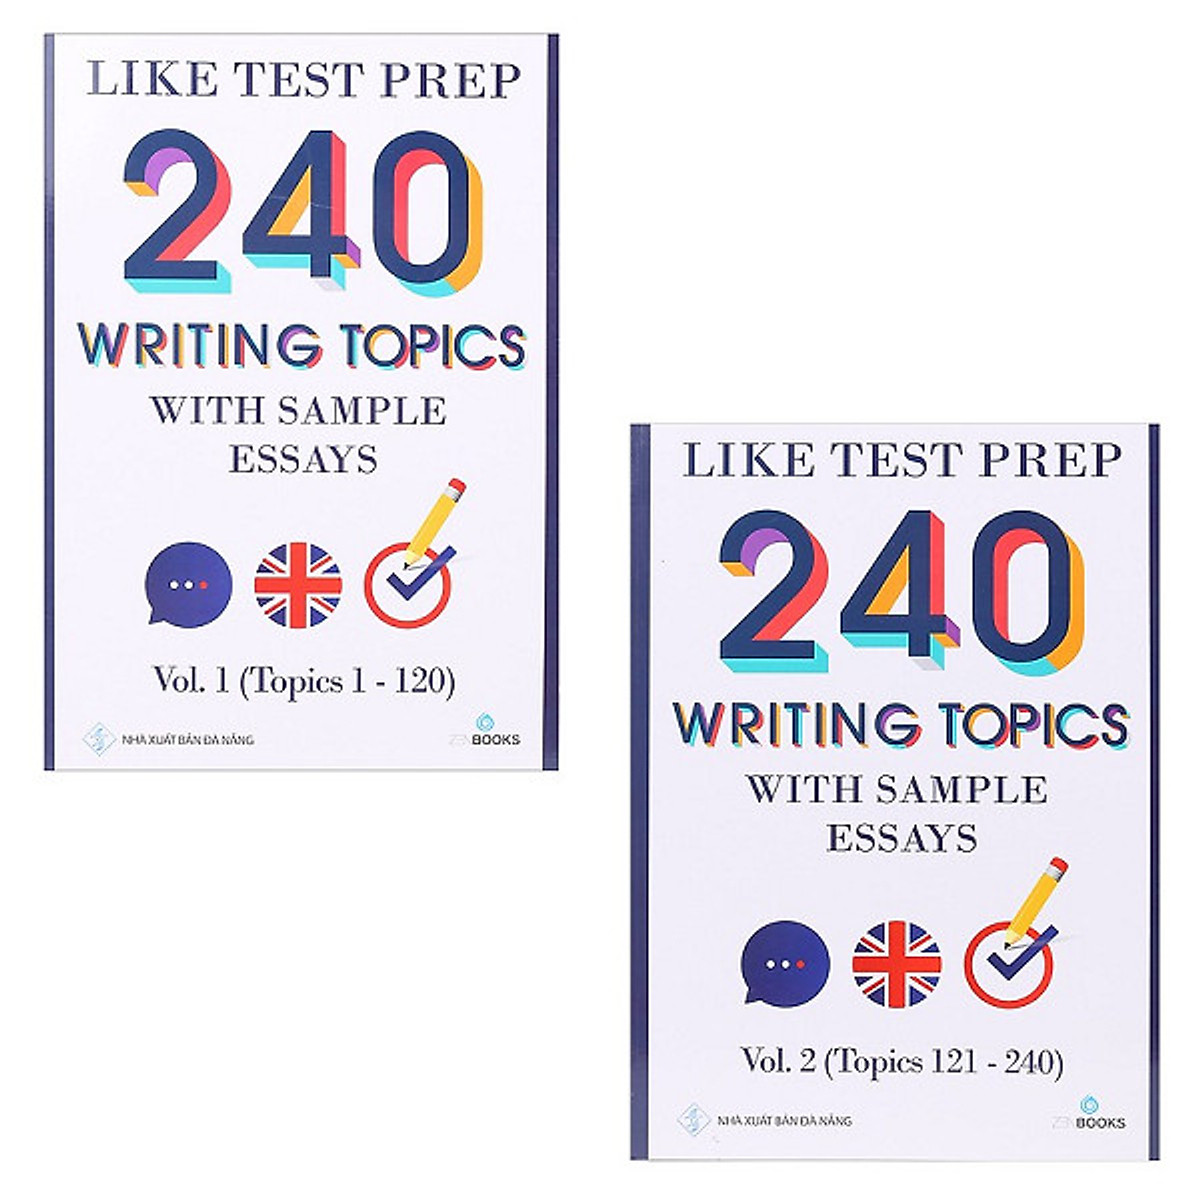 Hình đại diện sản phẩm 240 Writing Topics With Sample Essays - Vol 1 + Vol 2 (Topics 1 - 240)